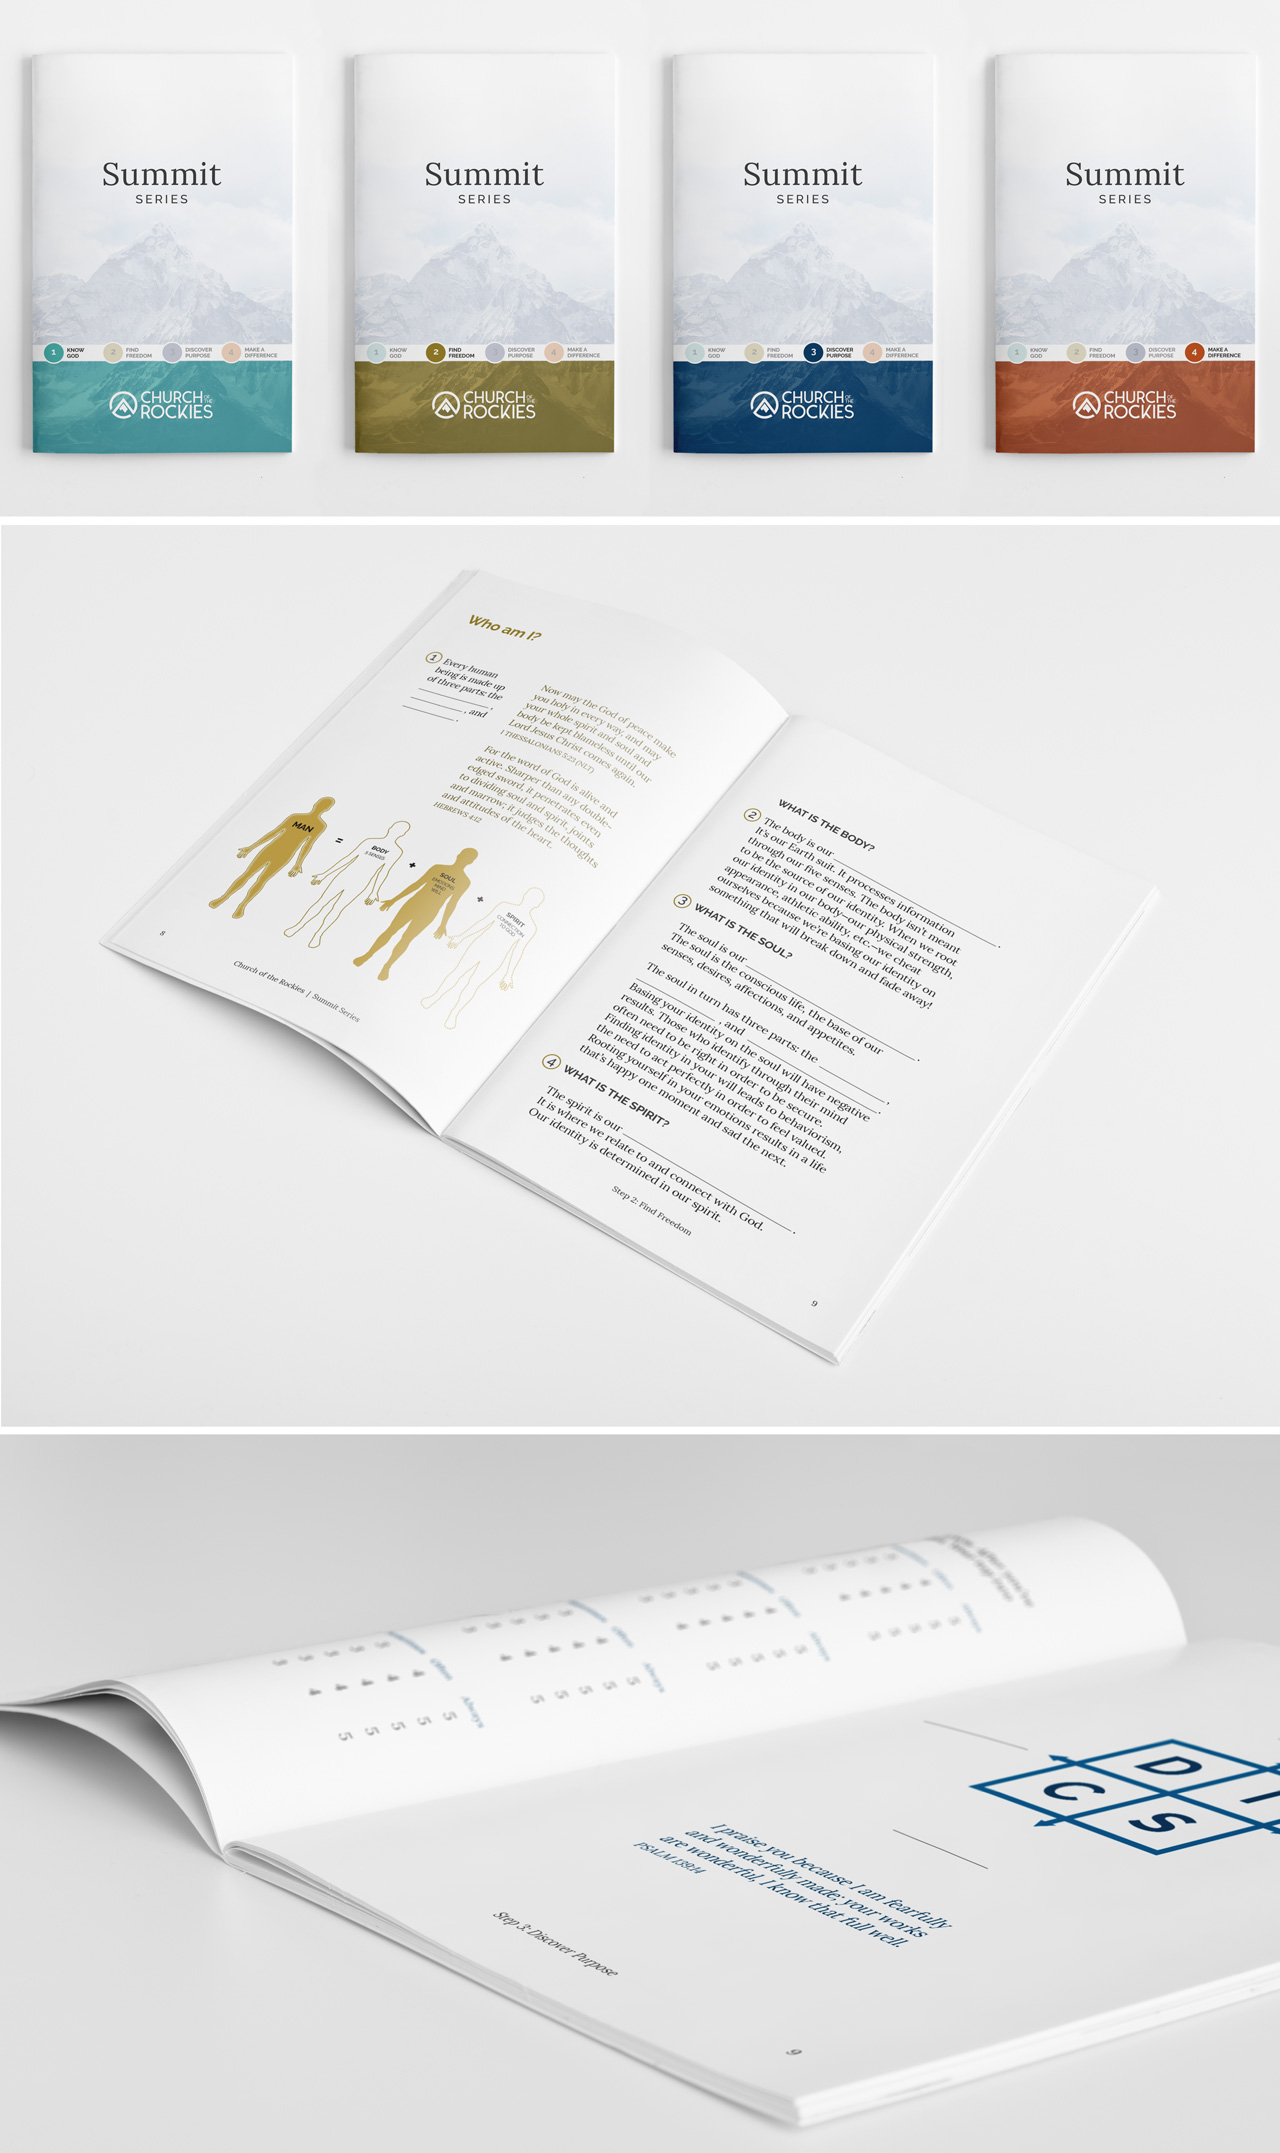 church brand collateral booklet design Kettle Fire Creative brand collateral Brand CollateralChurch of the Rockies cotr summit booklet mockup